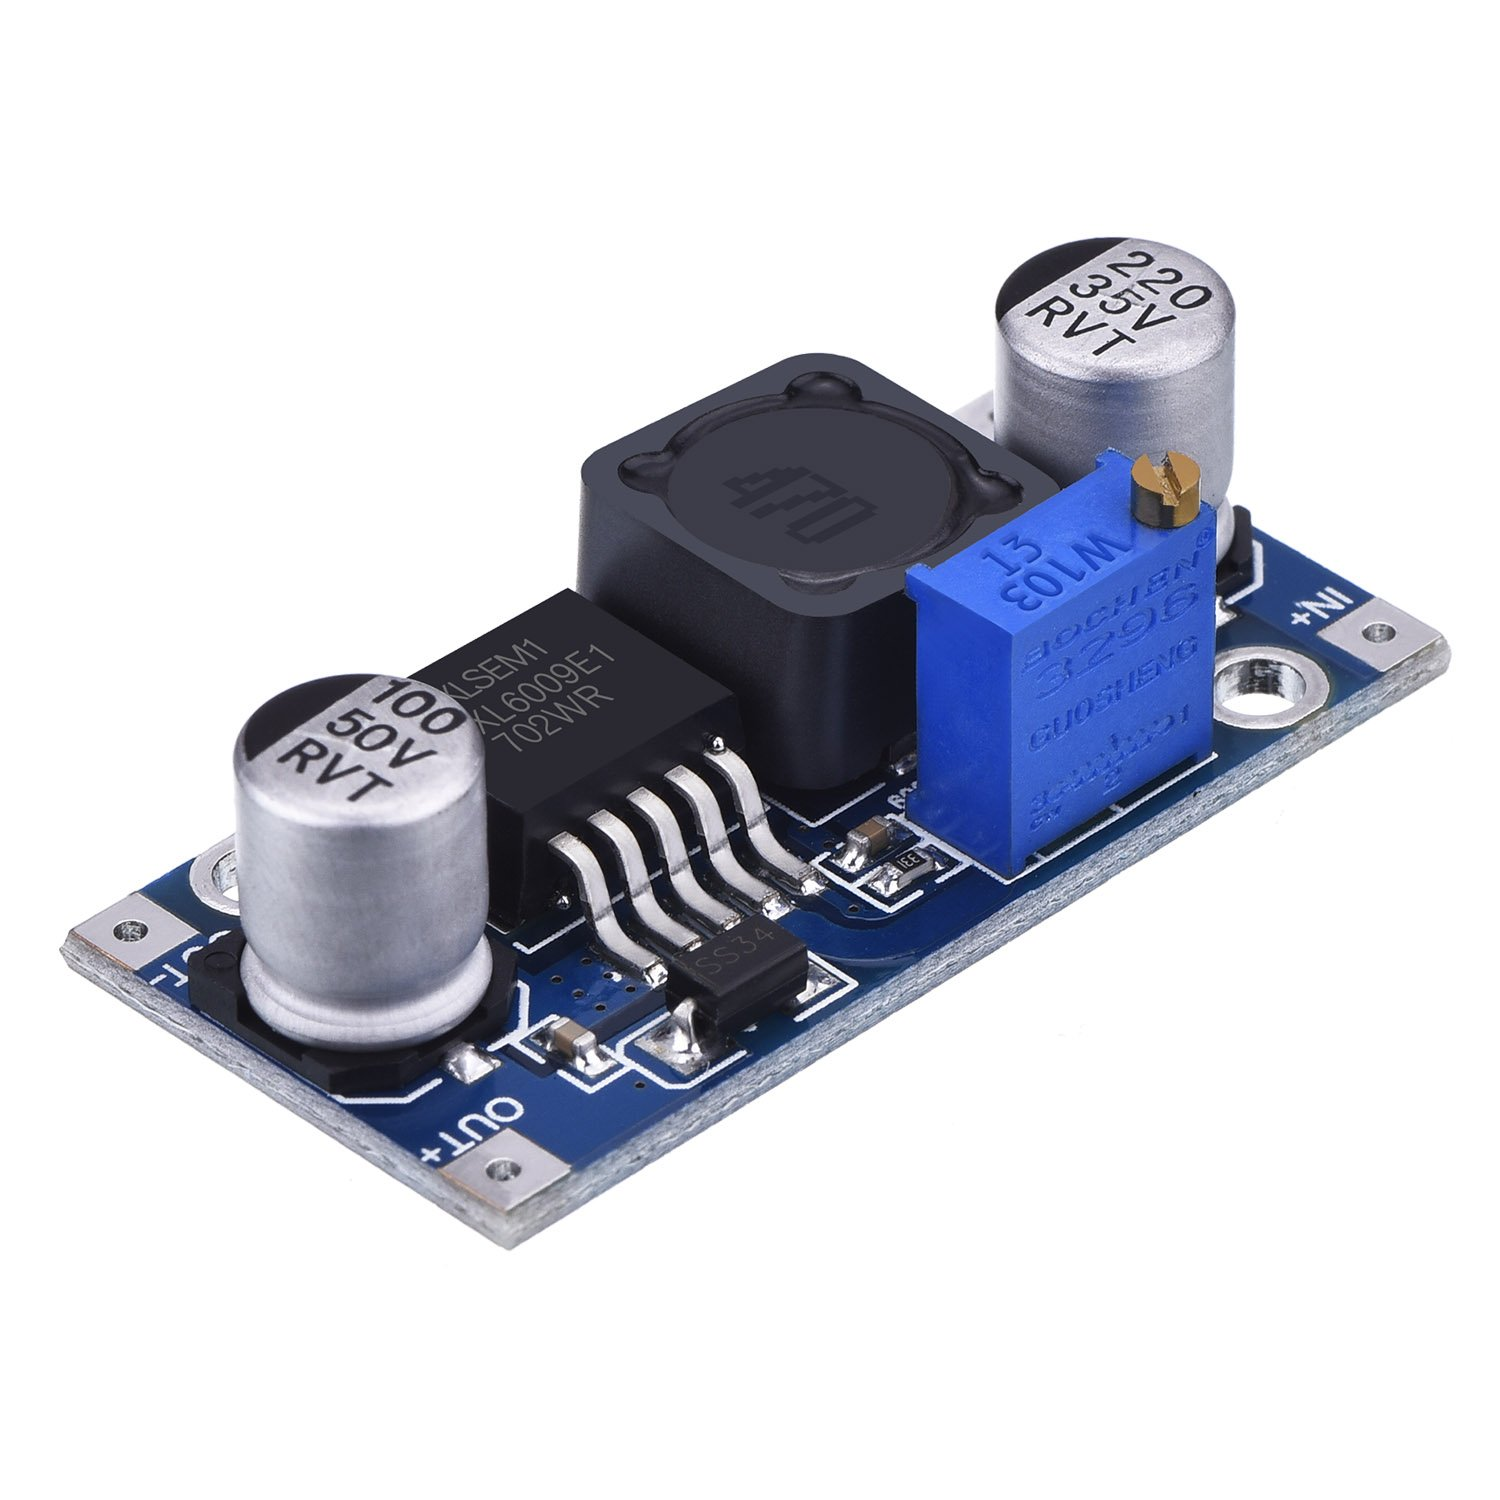 5 Pack Boost Converter Module Xl6009 Dc To 30 V 3v 24v Variable Power Supply Electronic Circuits Home Electronics